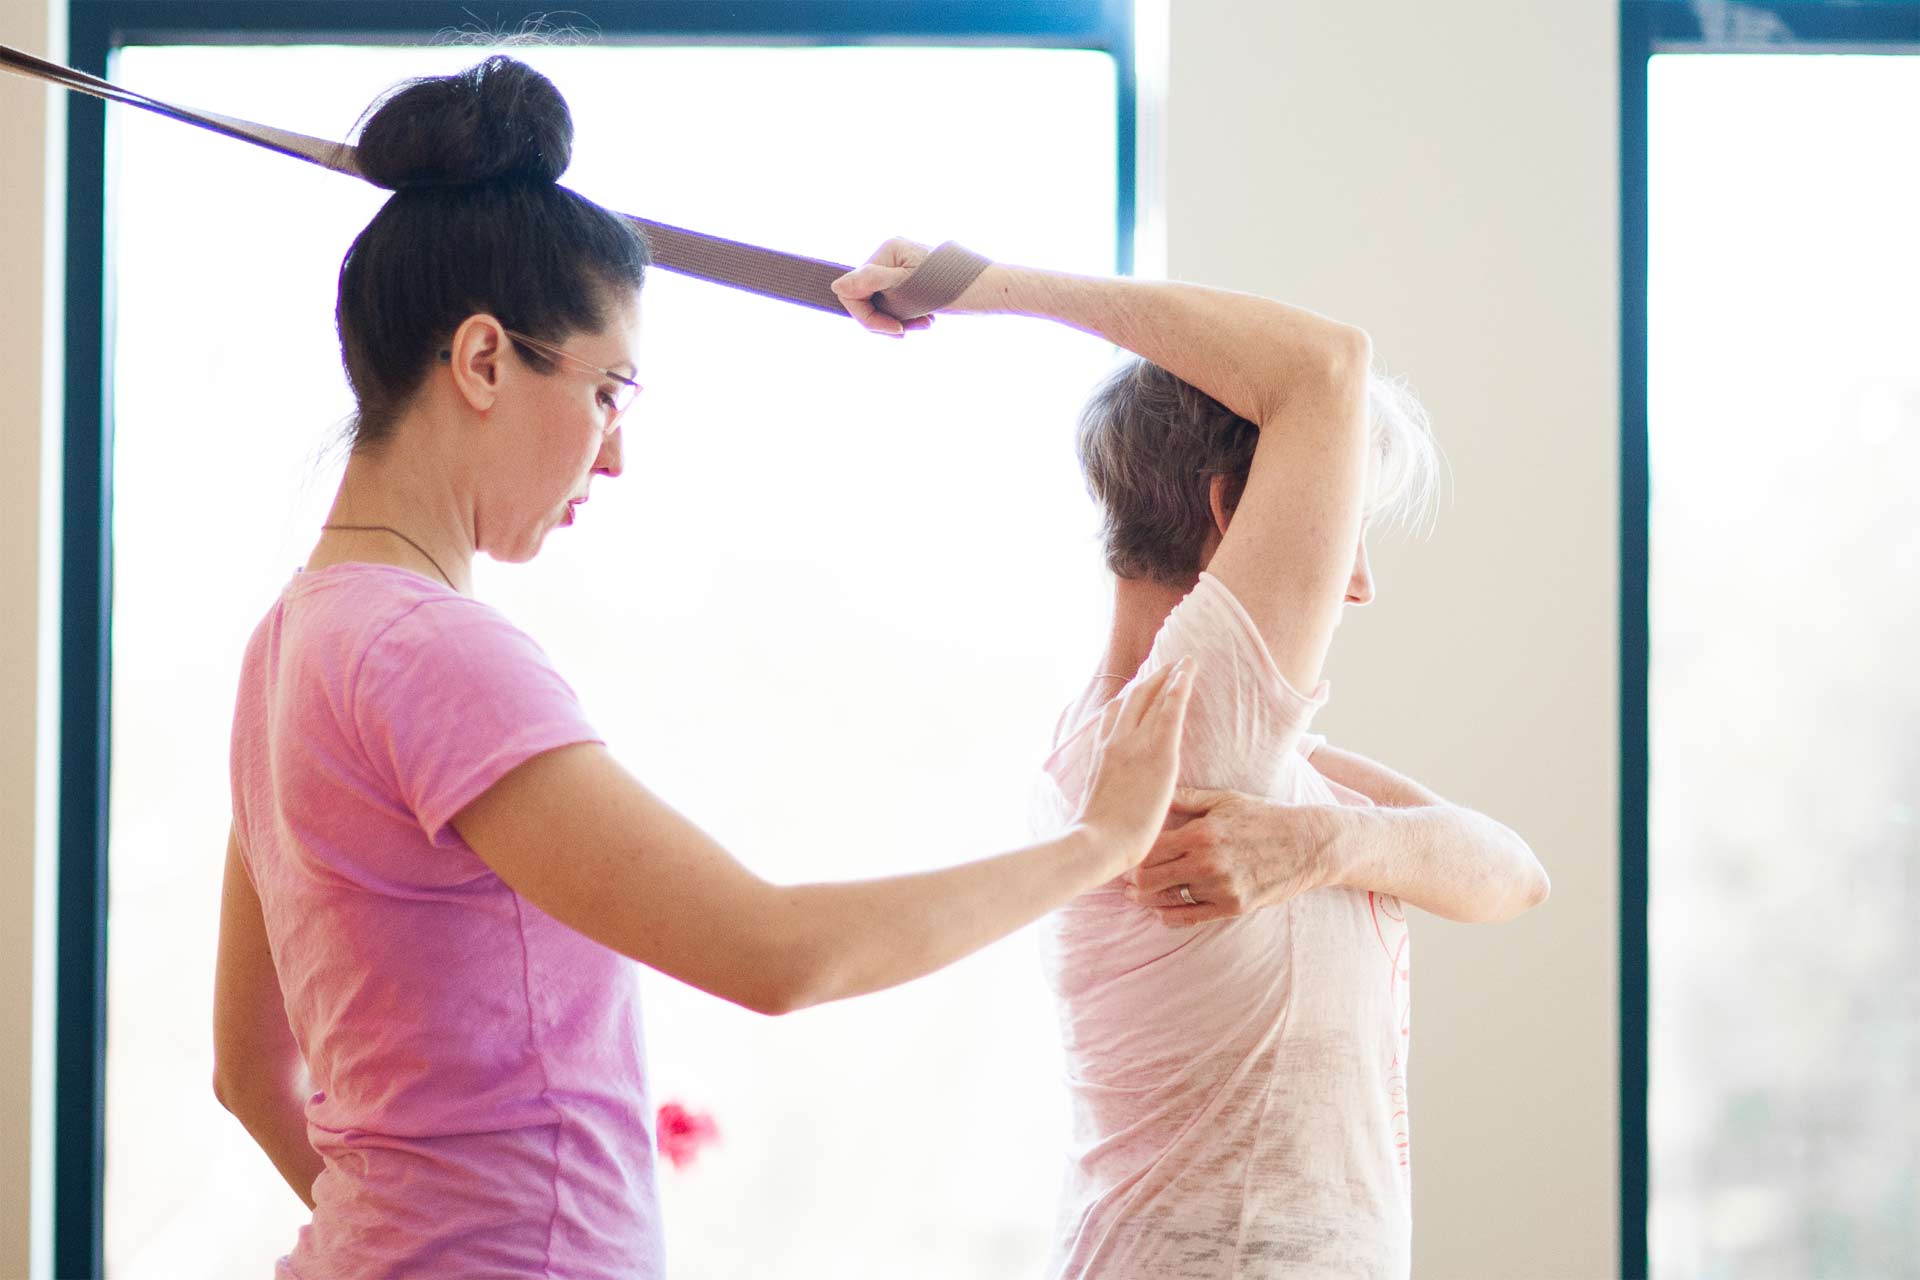 Neck and Shoulder Work using the Great Yoga Wall